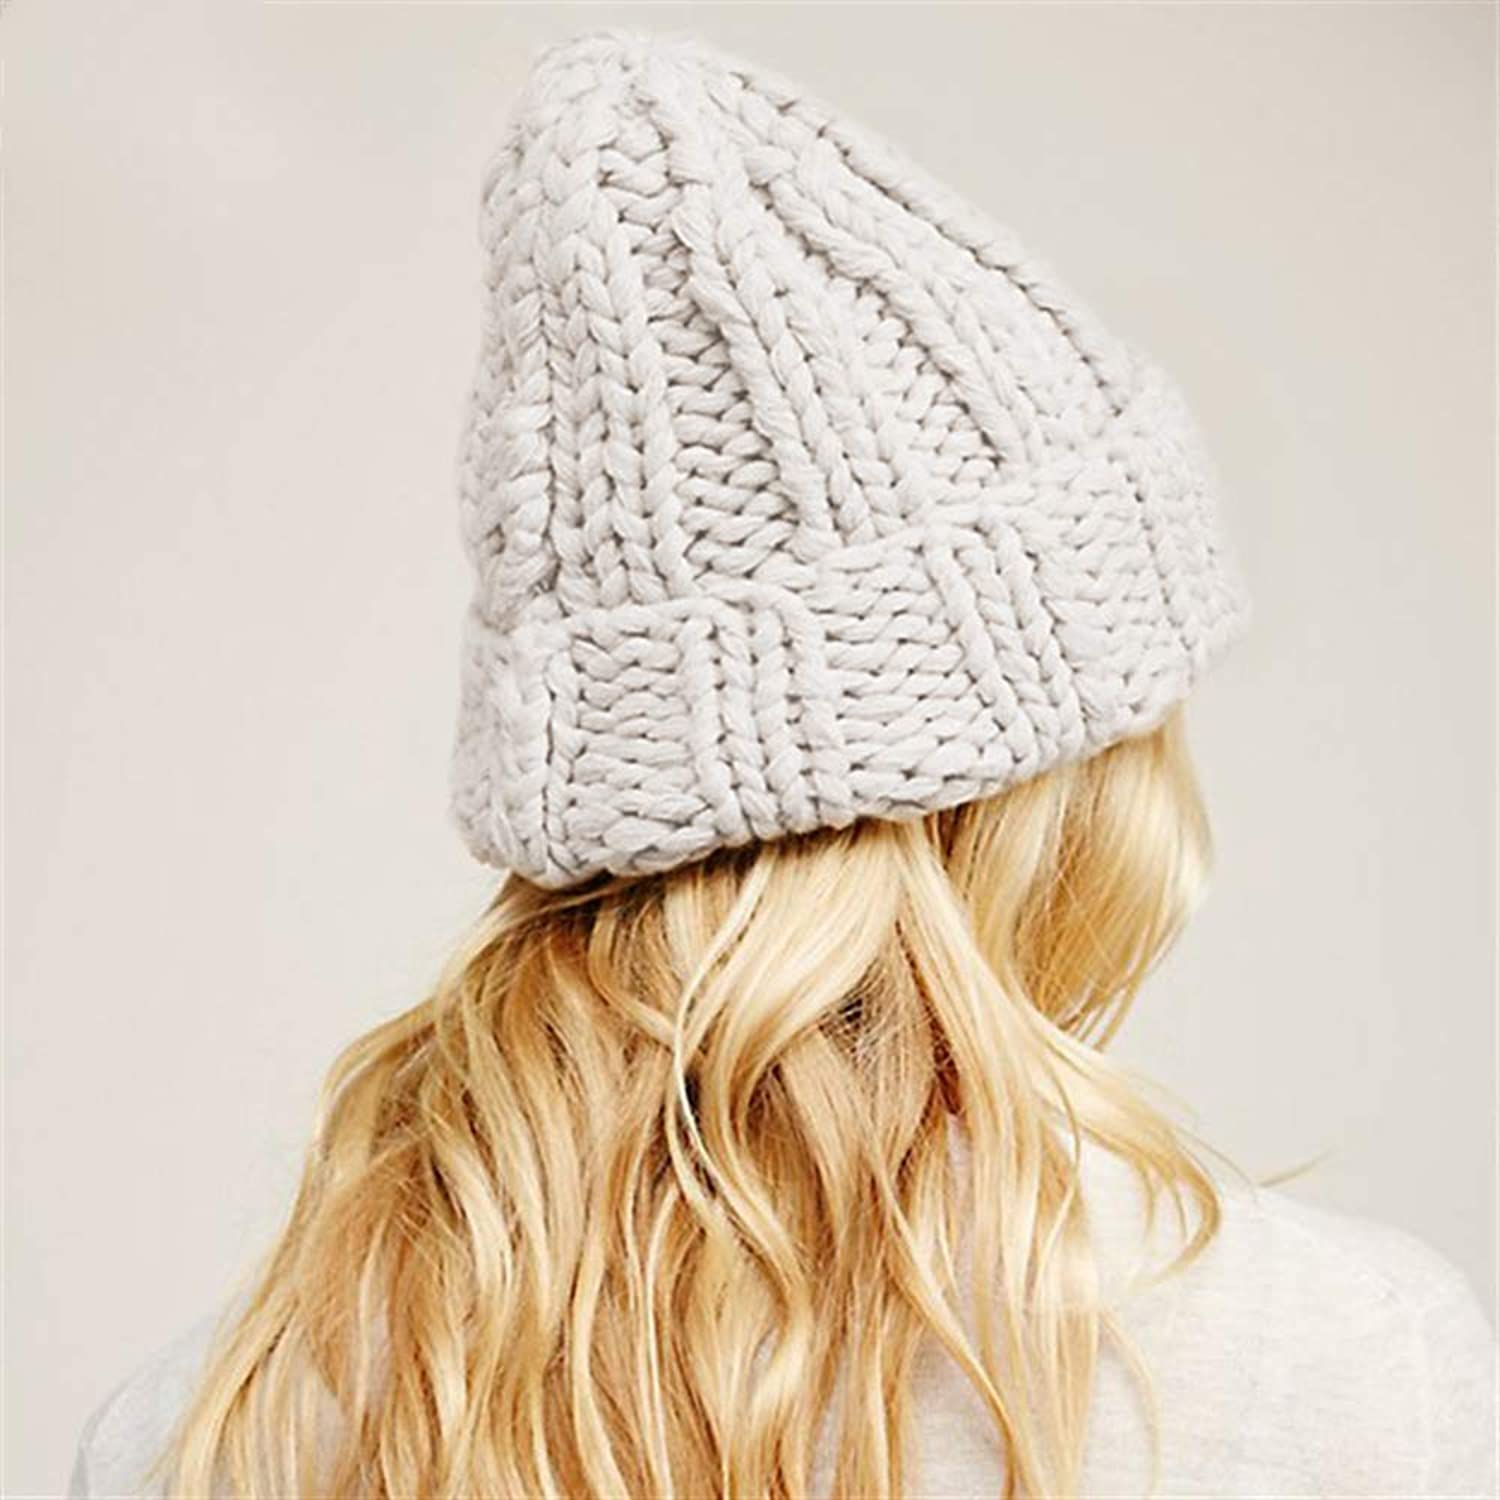 Causal Winter Knitted Hats Women Keep Warm Manual Wool Knitted Earmuffs Soft Hats Girls Caps Female,C